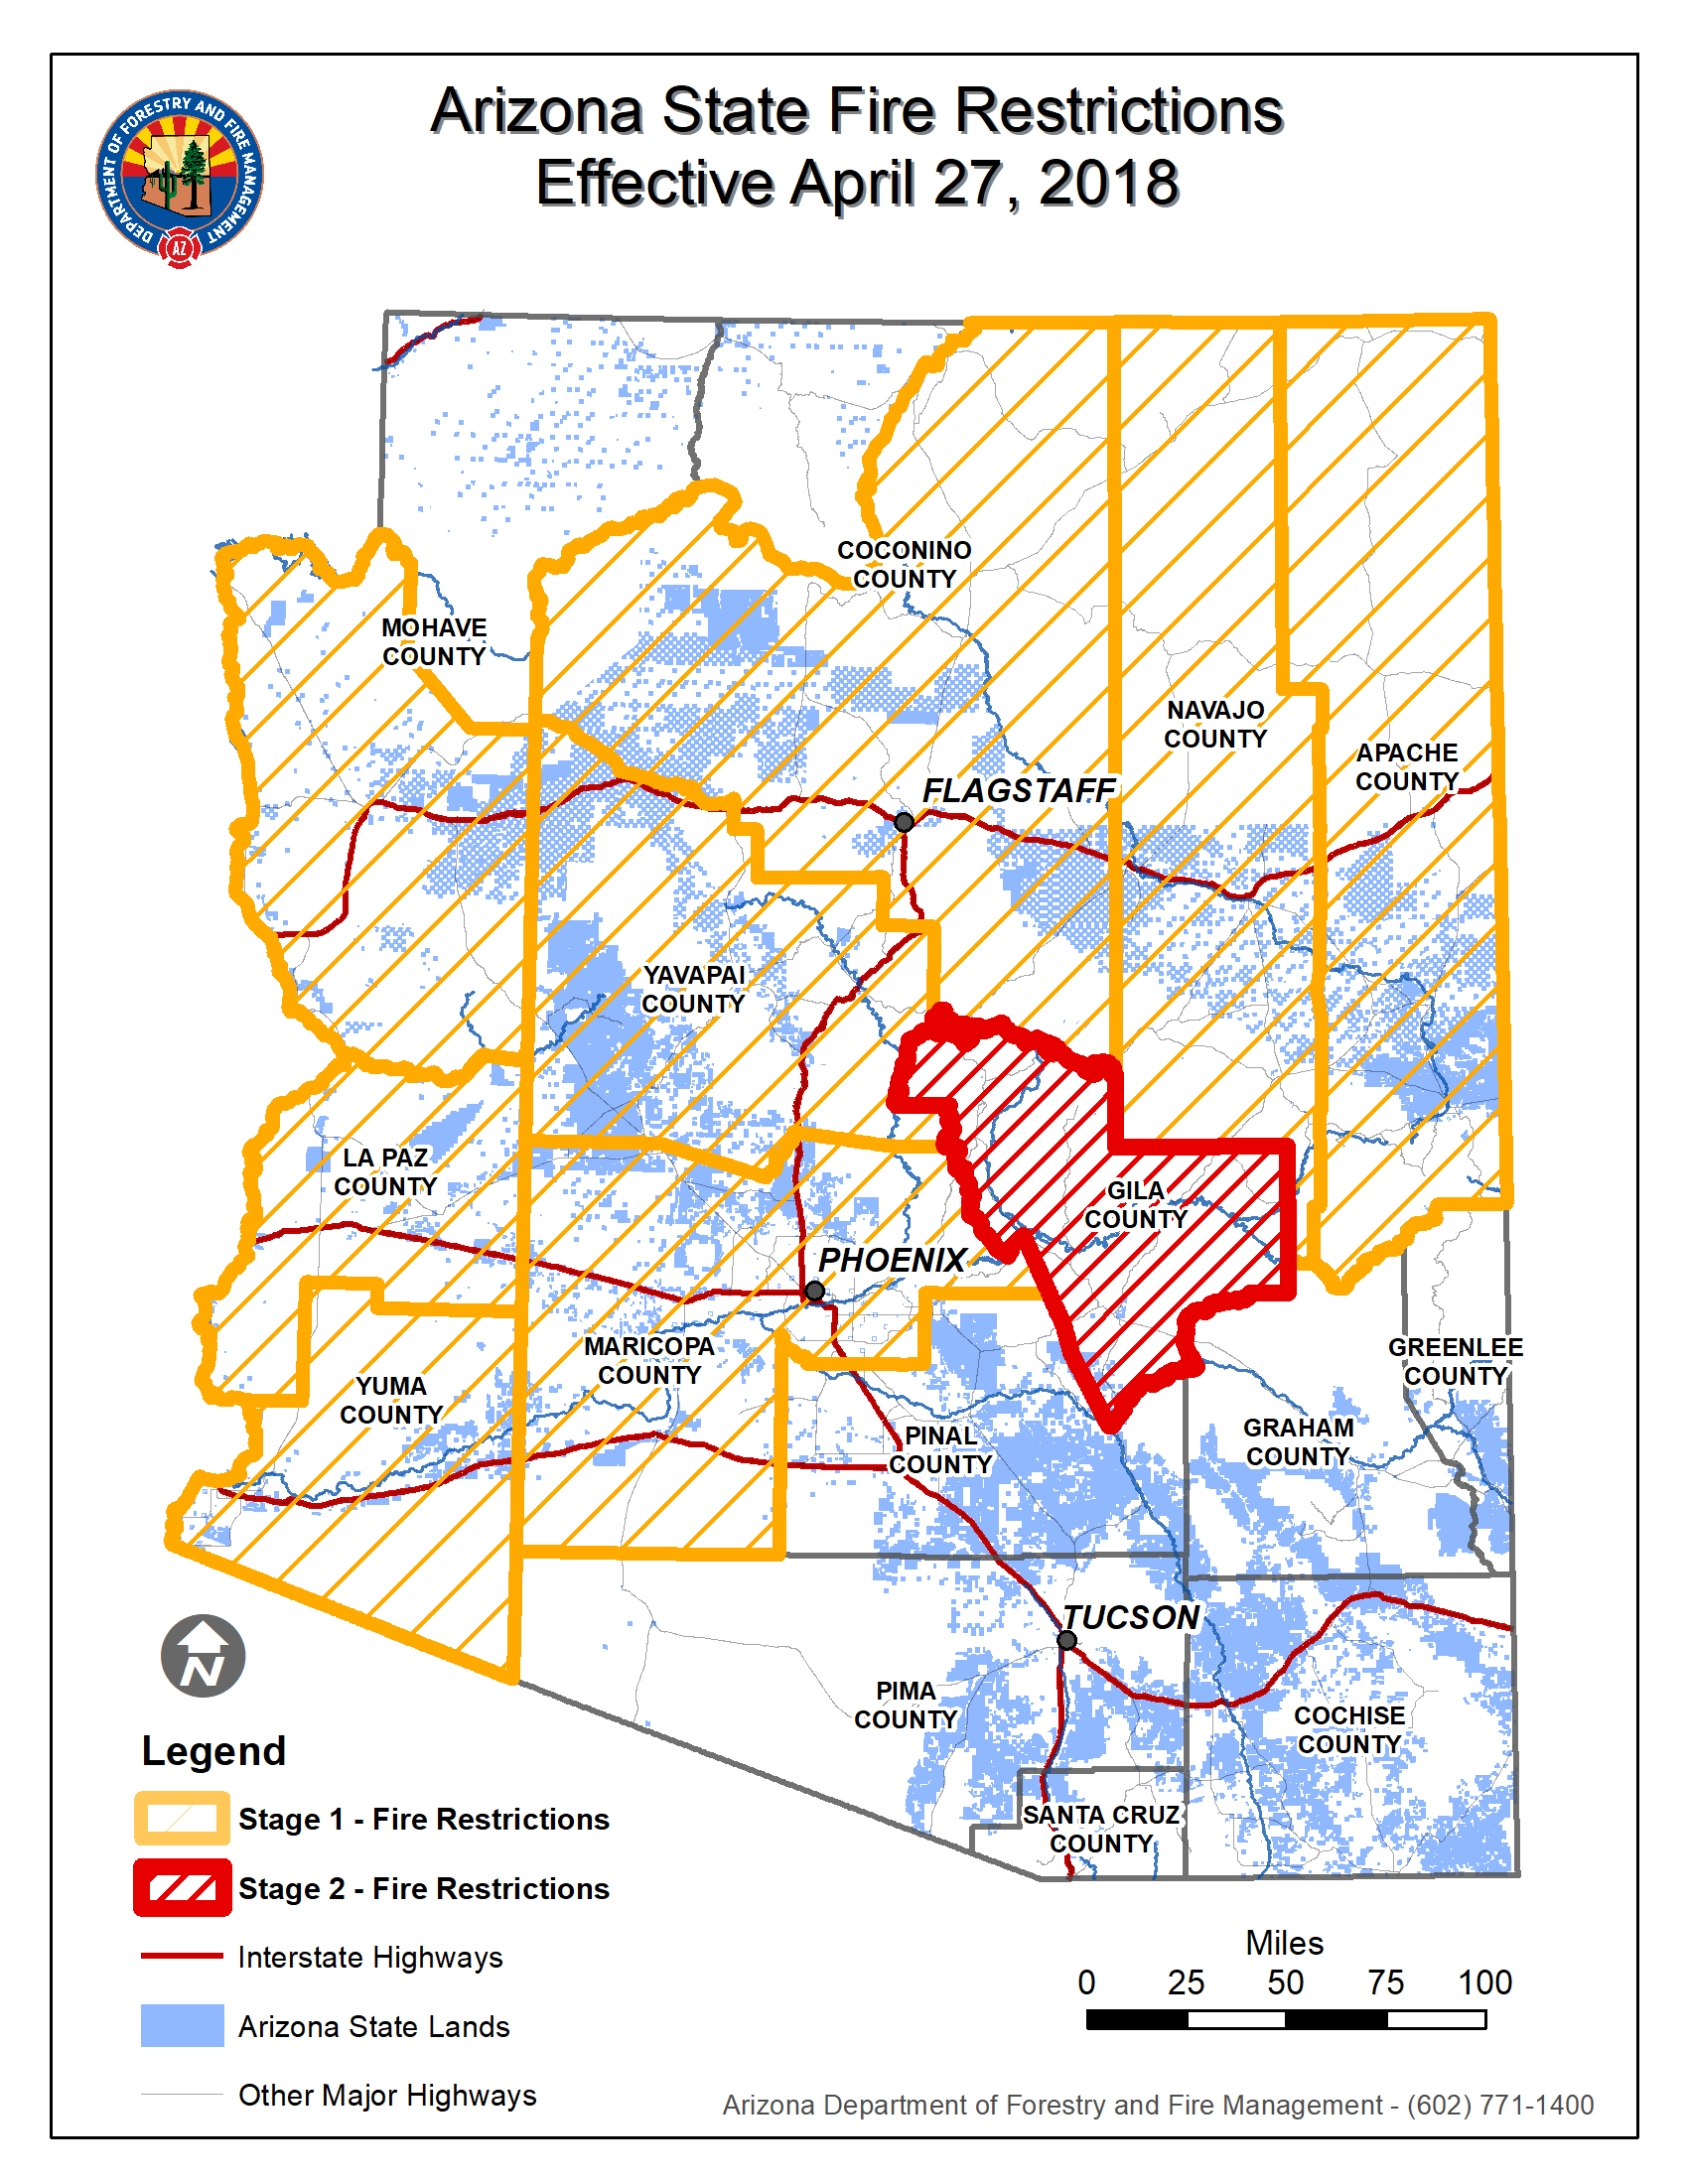 Fire Restrictions Map to Include Coconino County S. of Grand Canyon